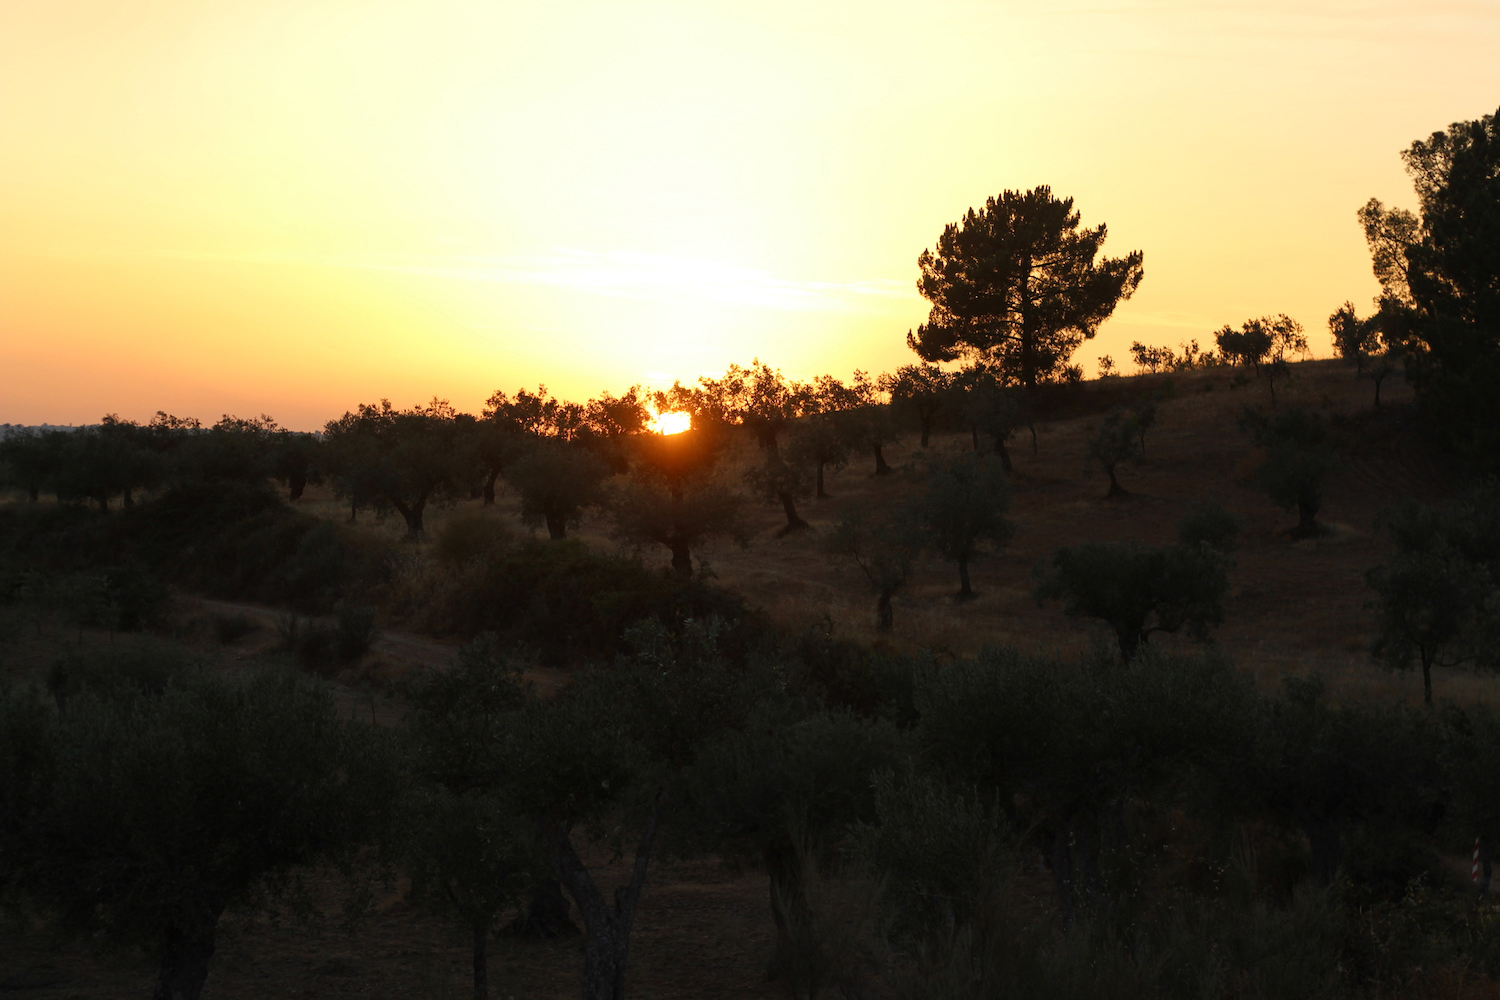 sunset portugal countryside